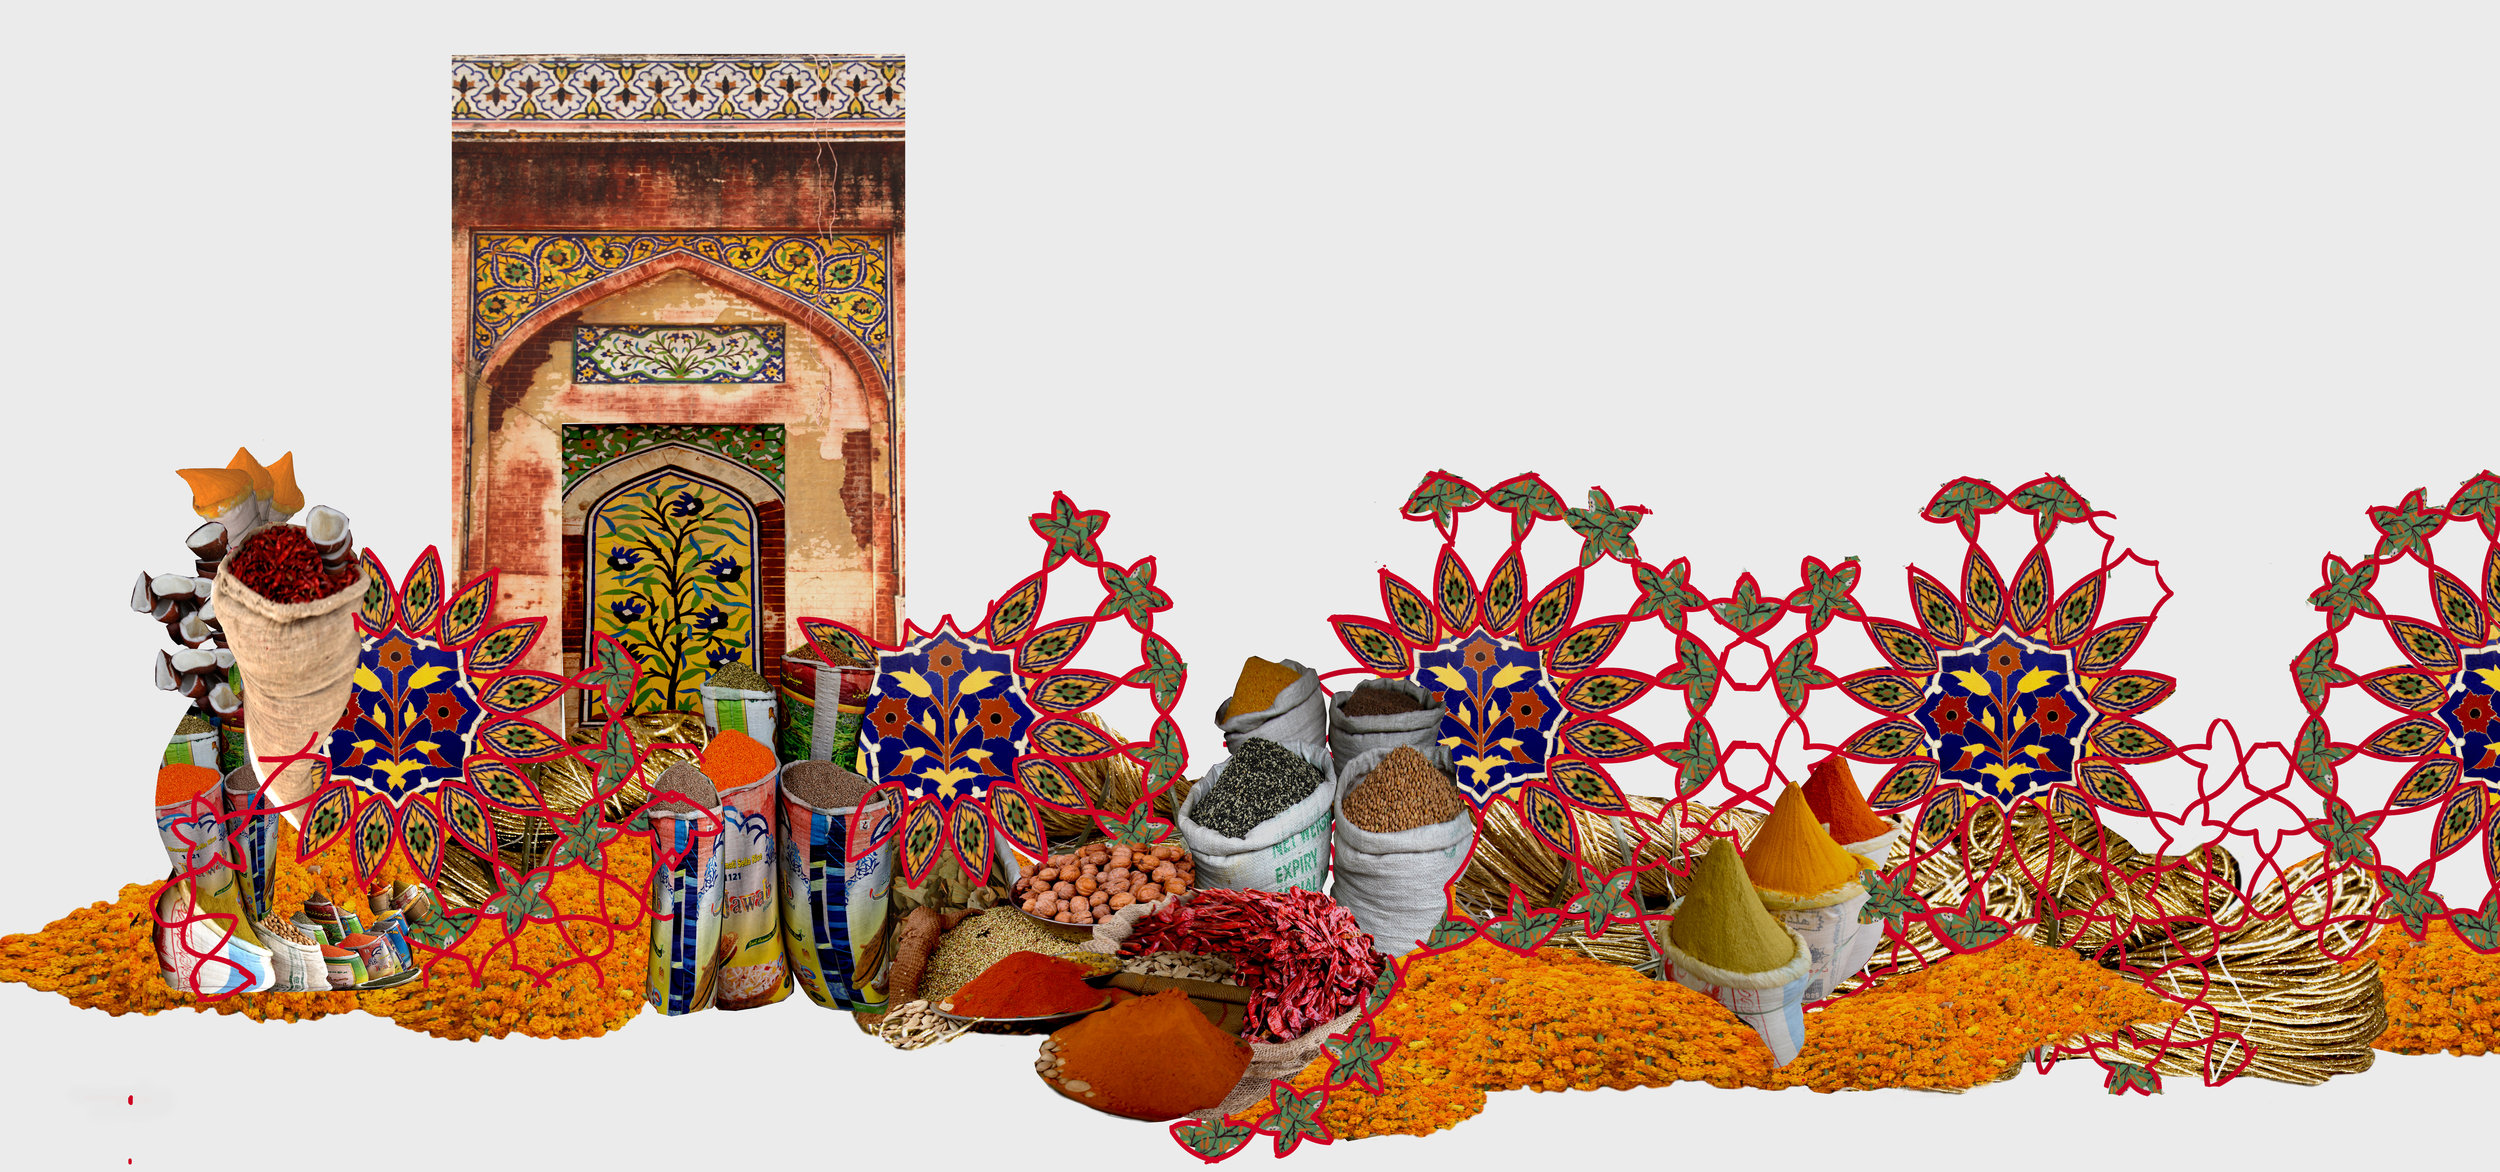 """Spice Bazaa r, digital photo collage, 22""""x34""""  This is a digital collage constructed from images of disparate parts of a city corner in Lahore. Parts of historic buildings such as the Wazir Khan mosque, that are in various stages of ruin, yet glorious in their beauty are juxtaposed with the hustle and bustle, color, and texture of the spice bazaar to form these digital collages."""